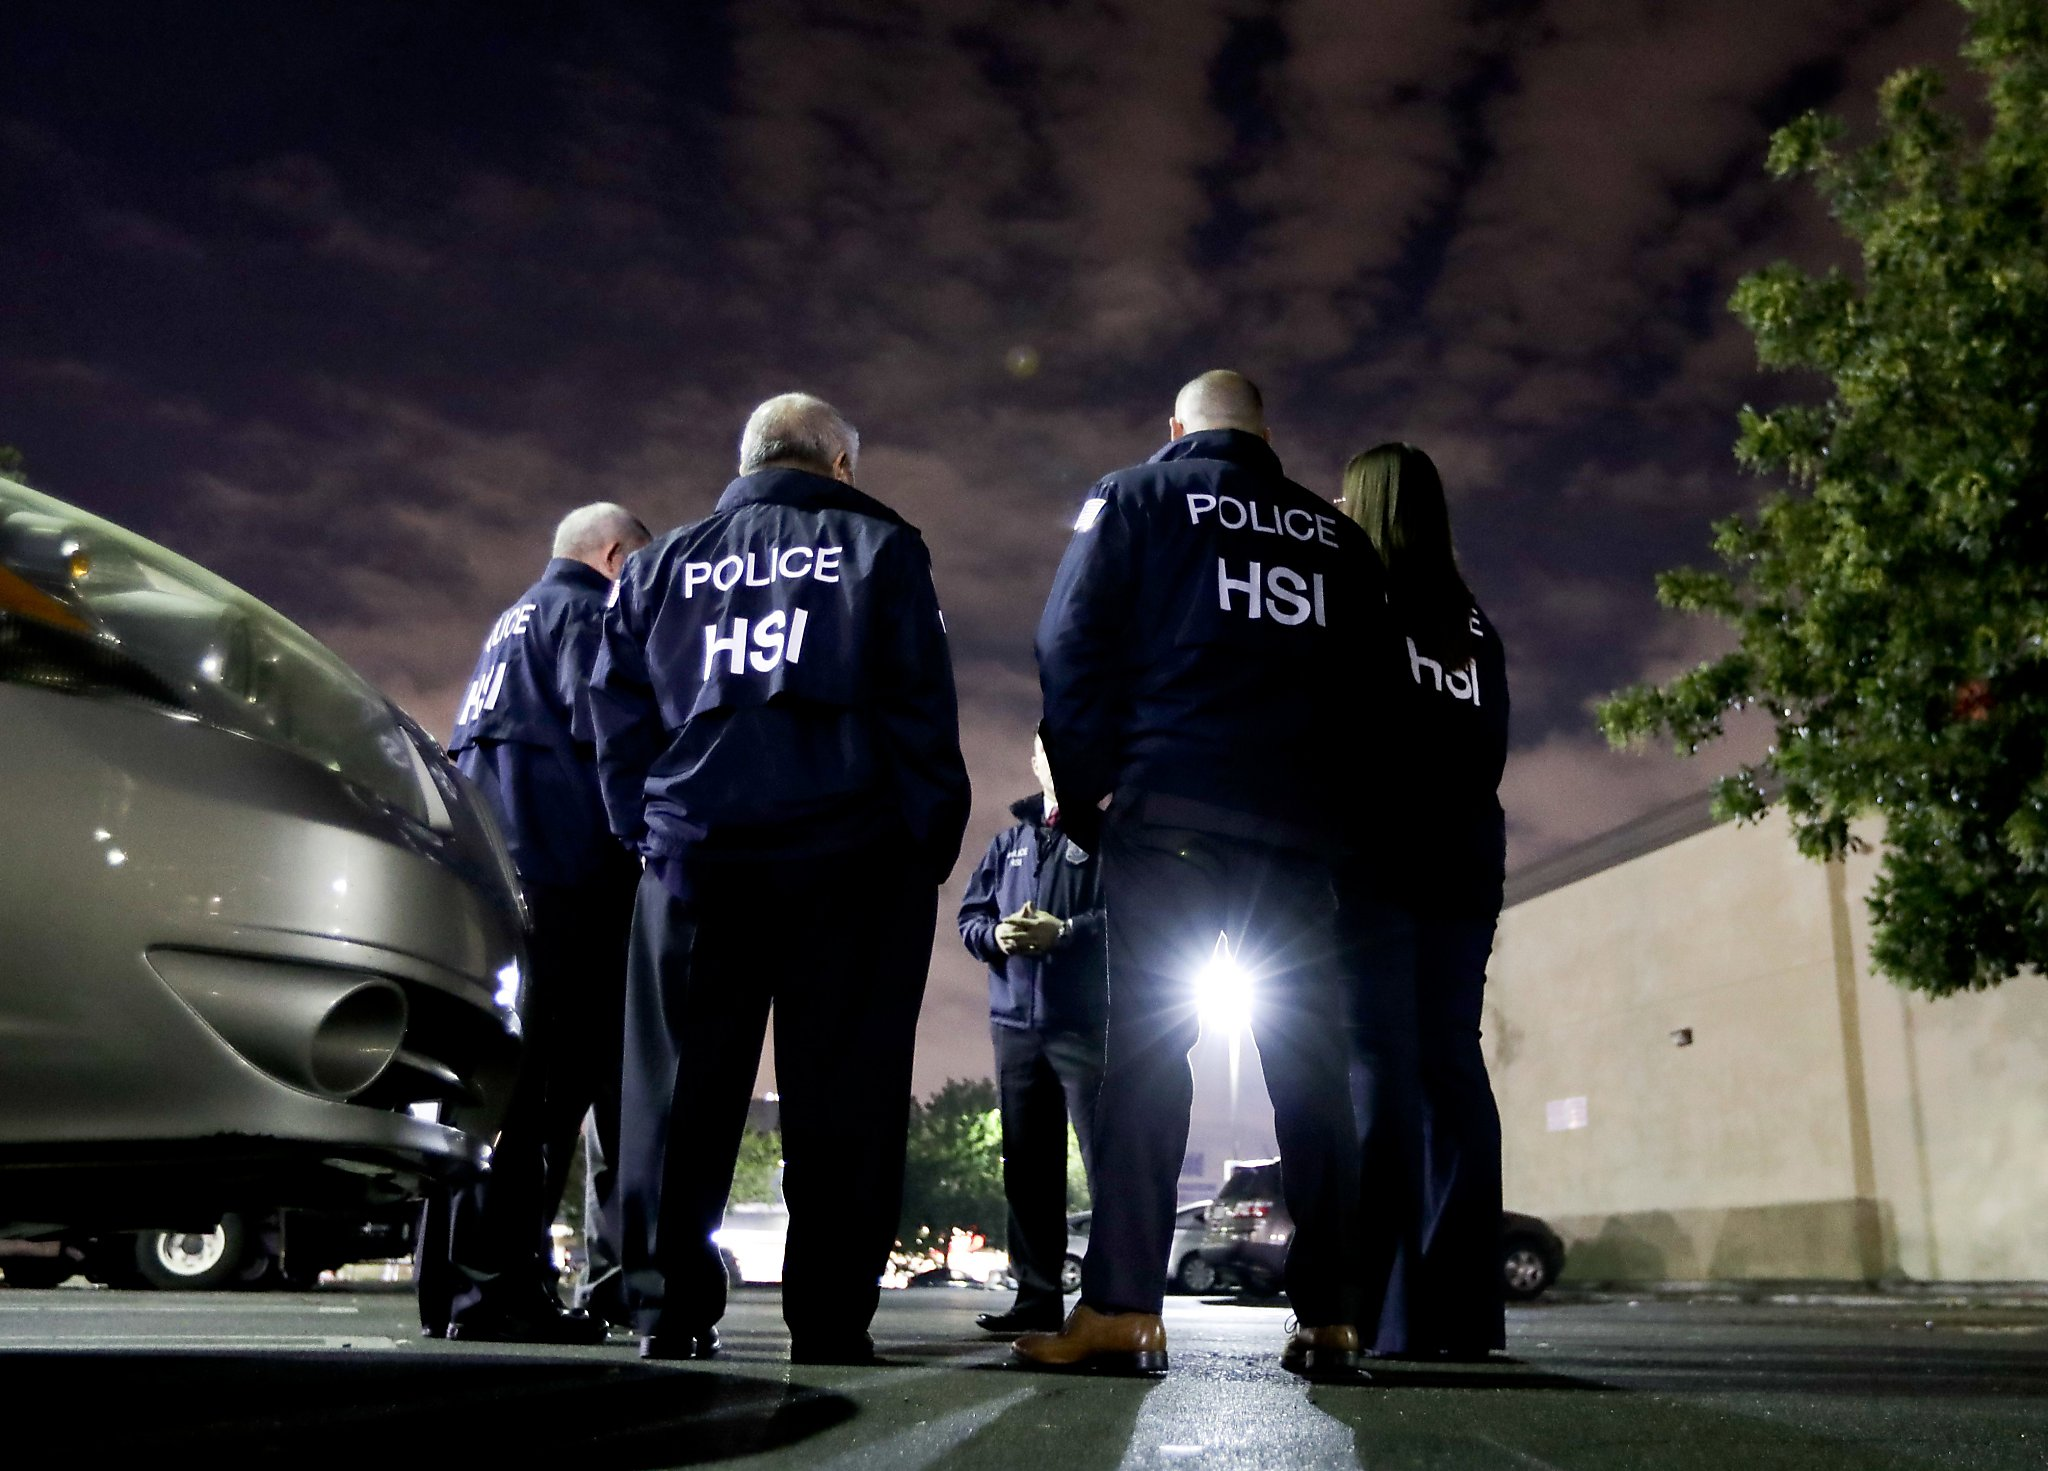 ICE raids targeting migrant families slated to start Sunday in major US cities